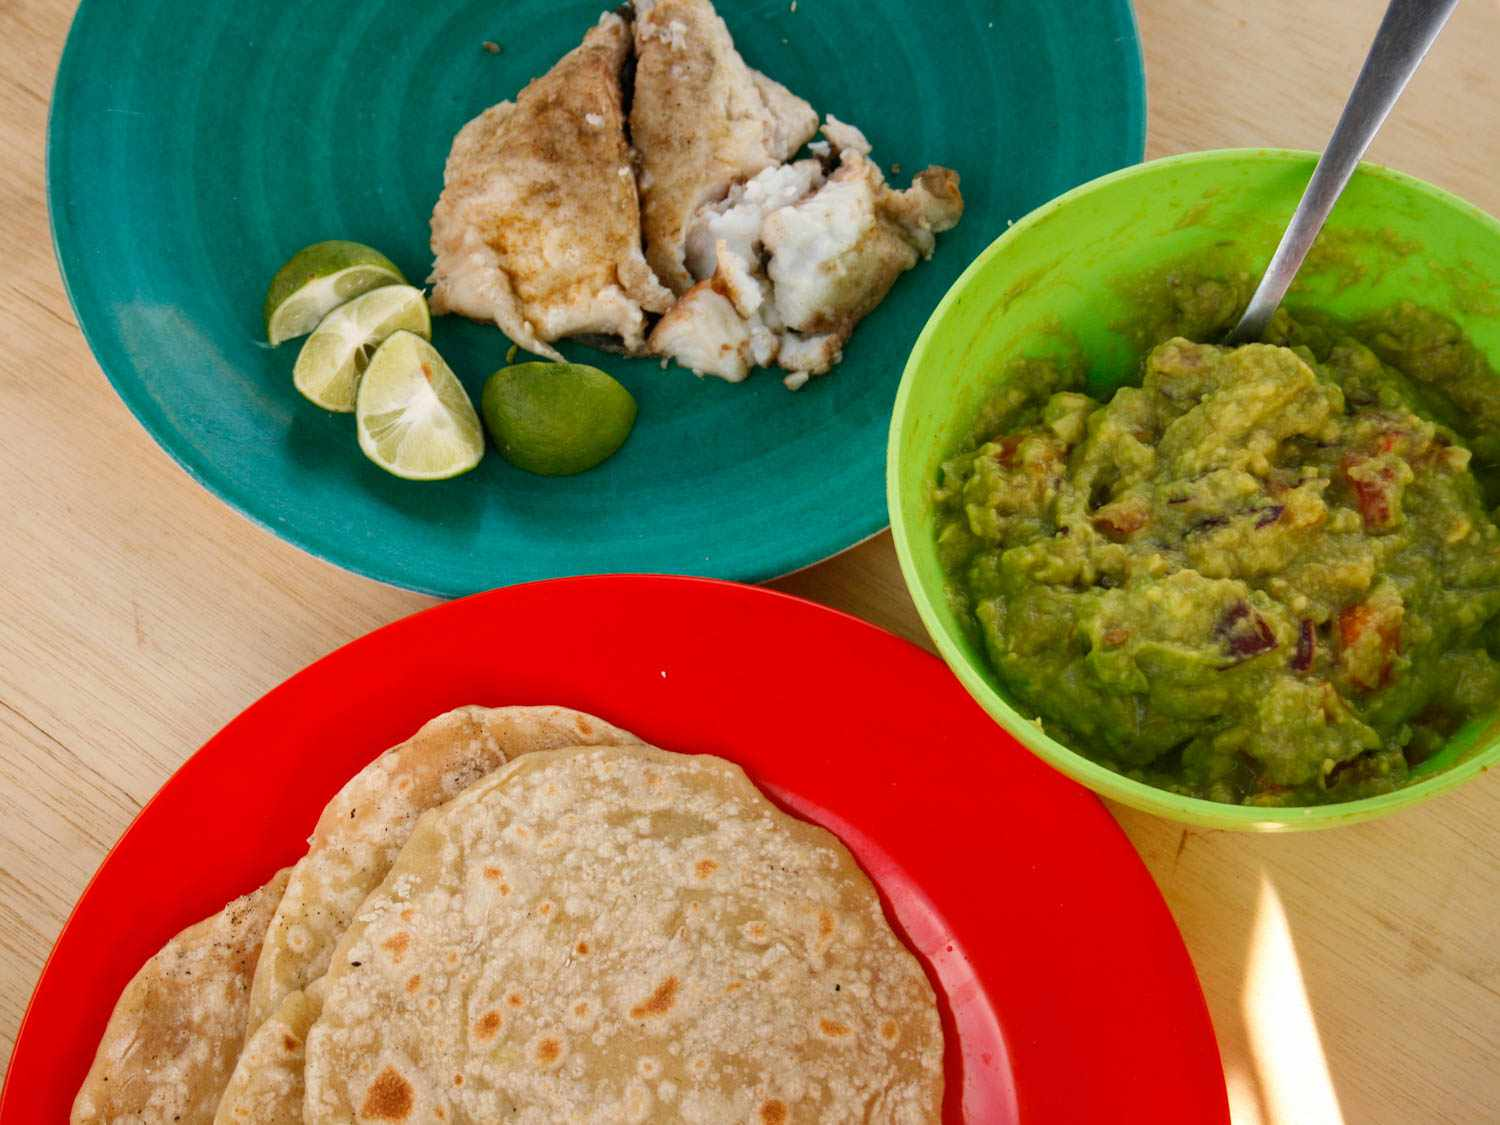 20150615-cooking-on-a-boat-fish-tacos1-lauren-sloss.jpg